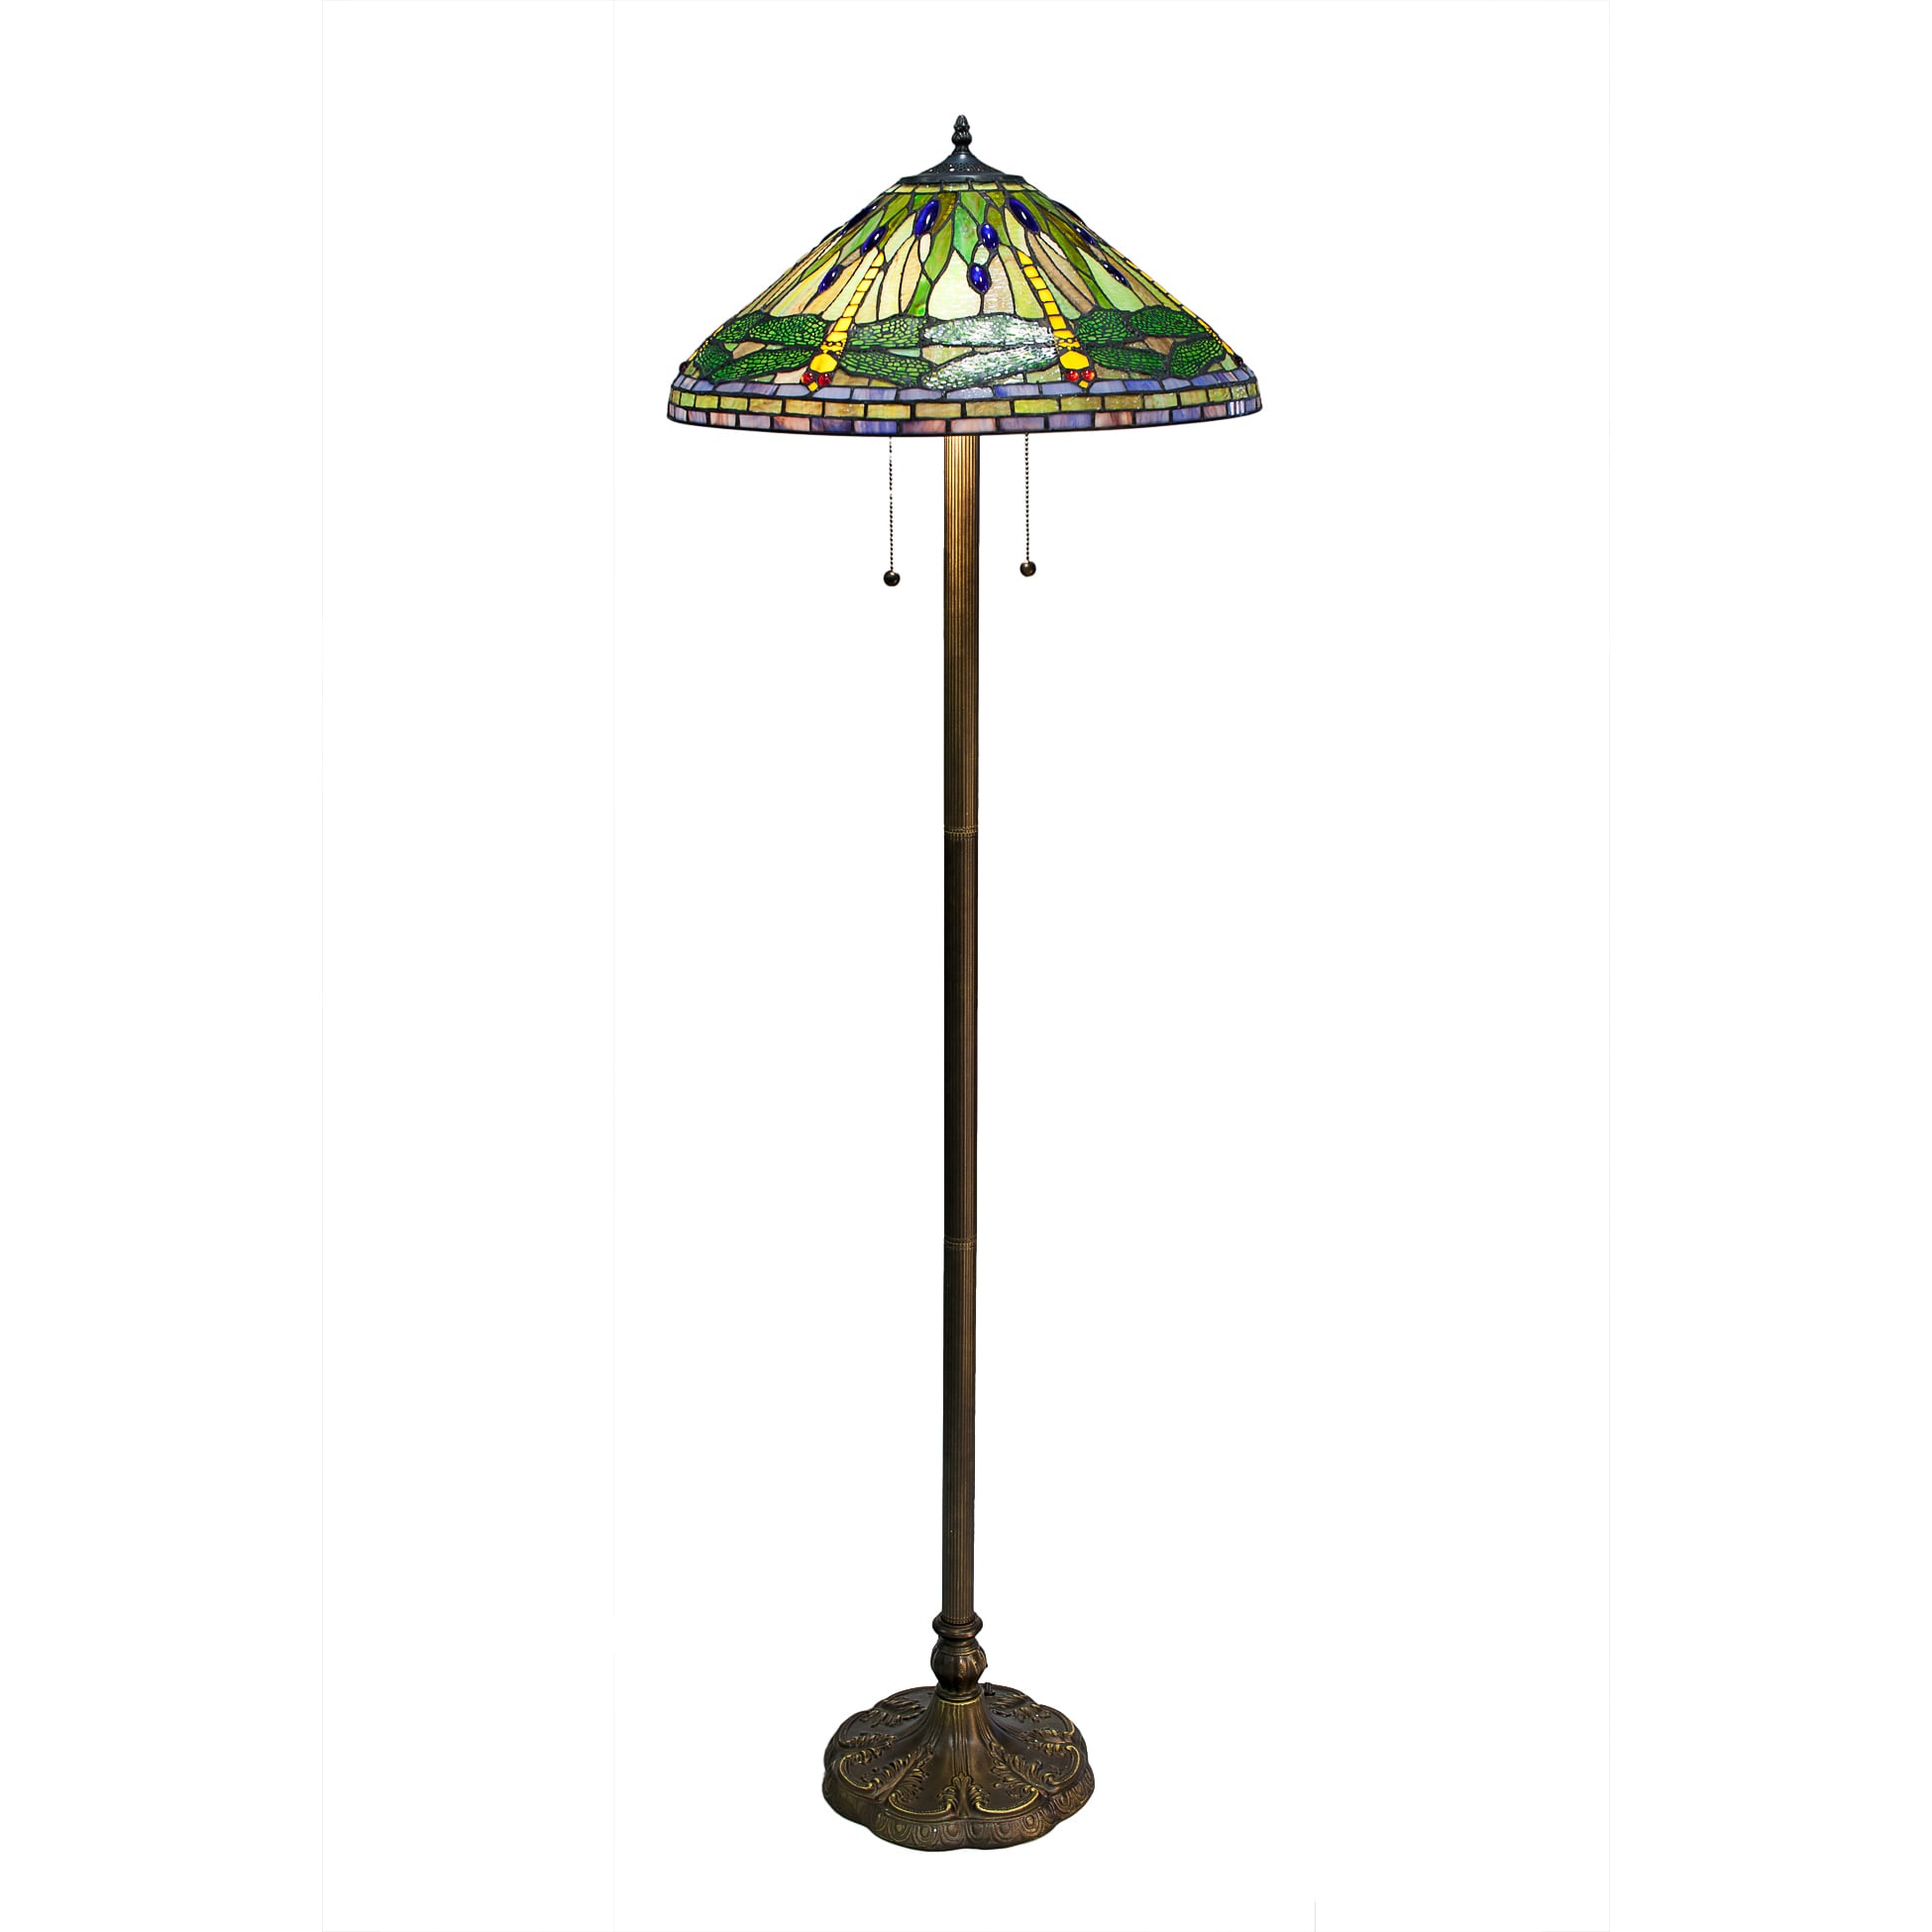 Tiffany style floor lamp stained glass shade cast metal zinc base tiffany style floor lamp stained glass shade cast metal zinc base bronze finish aloadofball Image collections